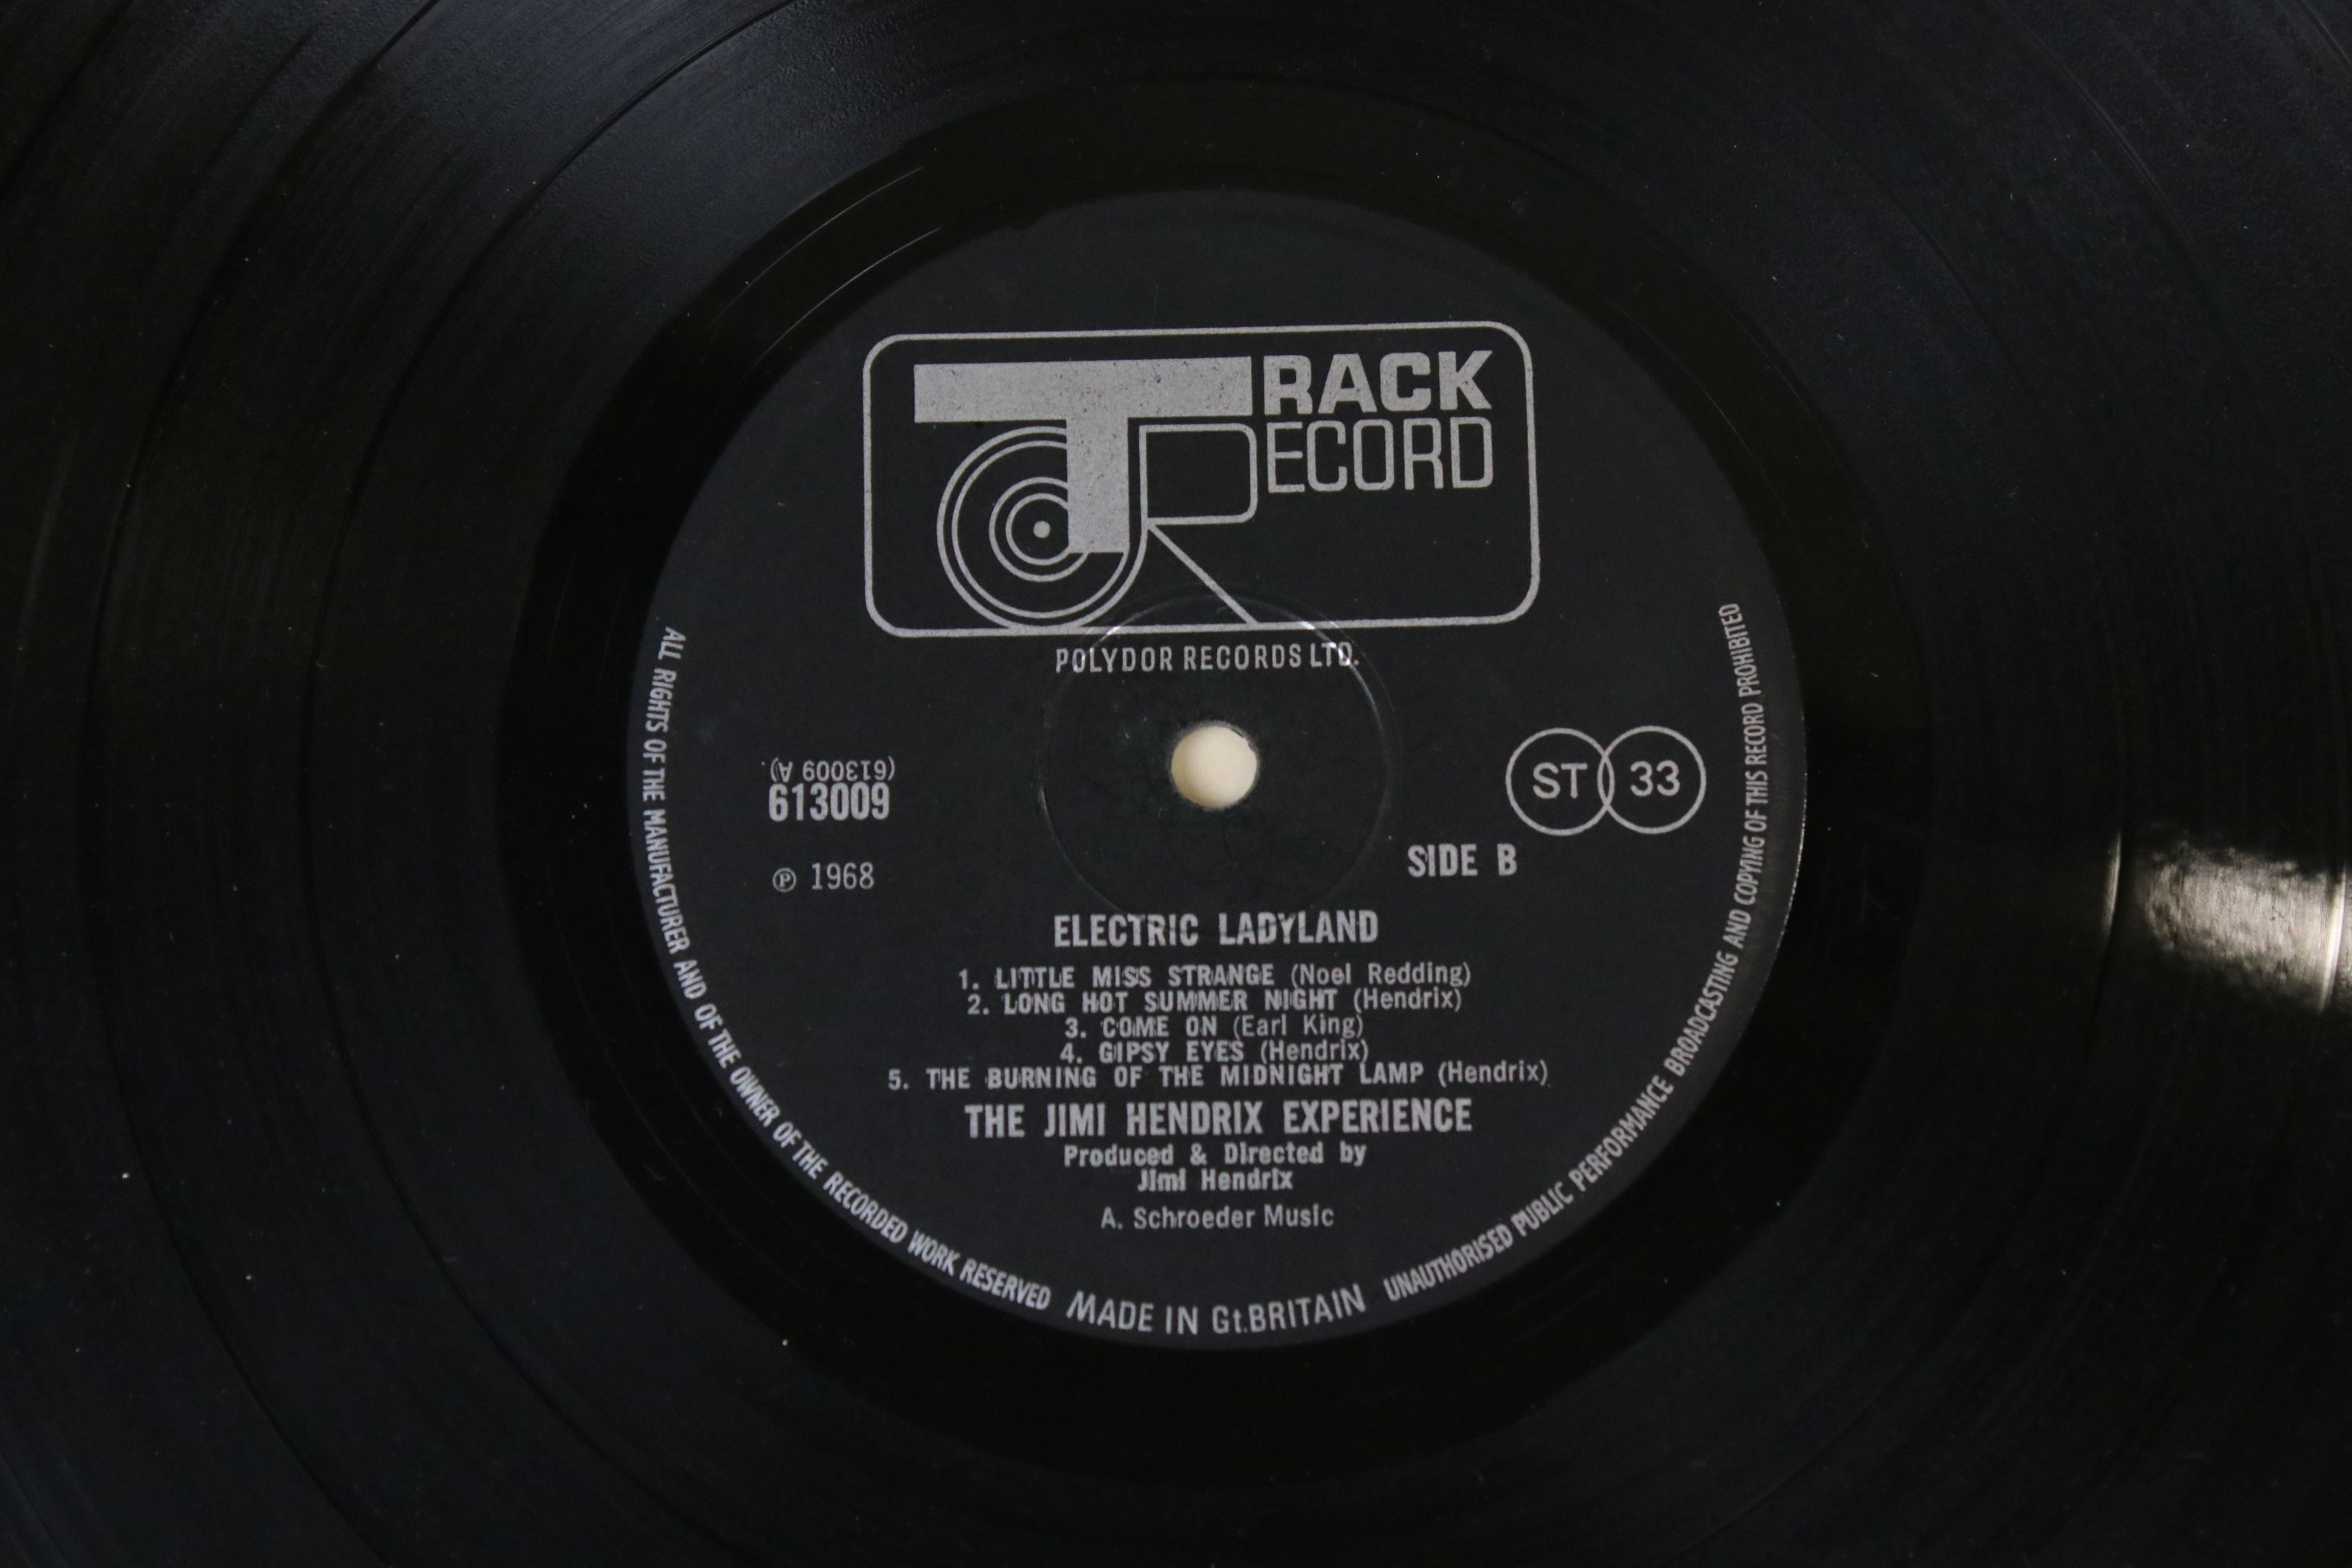 Vinyl - Jimi Hendrix Electric Ladyland LP on Track 613008/9 with inner with blue lettering with Jimi - Image 3 of 9